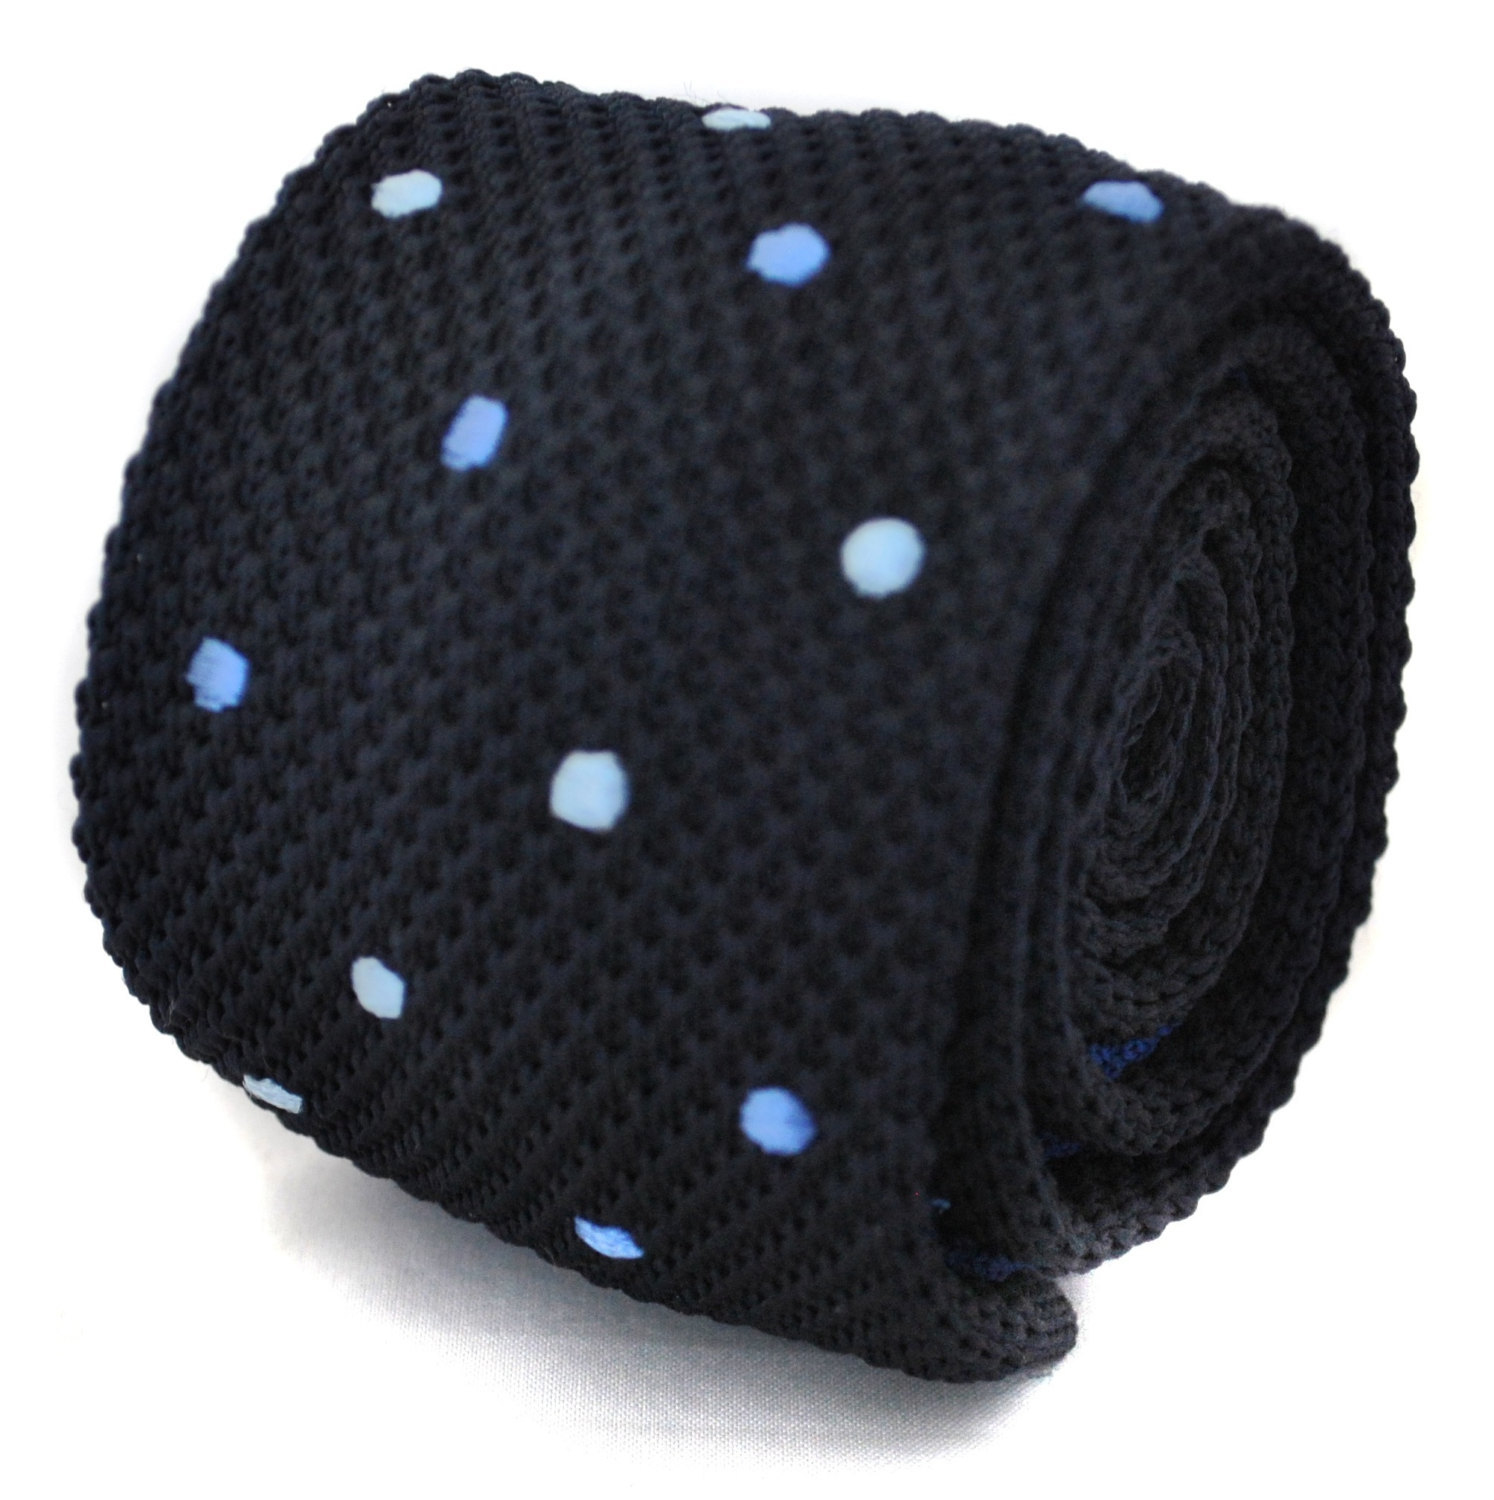 knitted navy with blue spotted skinny tie by Frederick Thomas FT1172